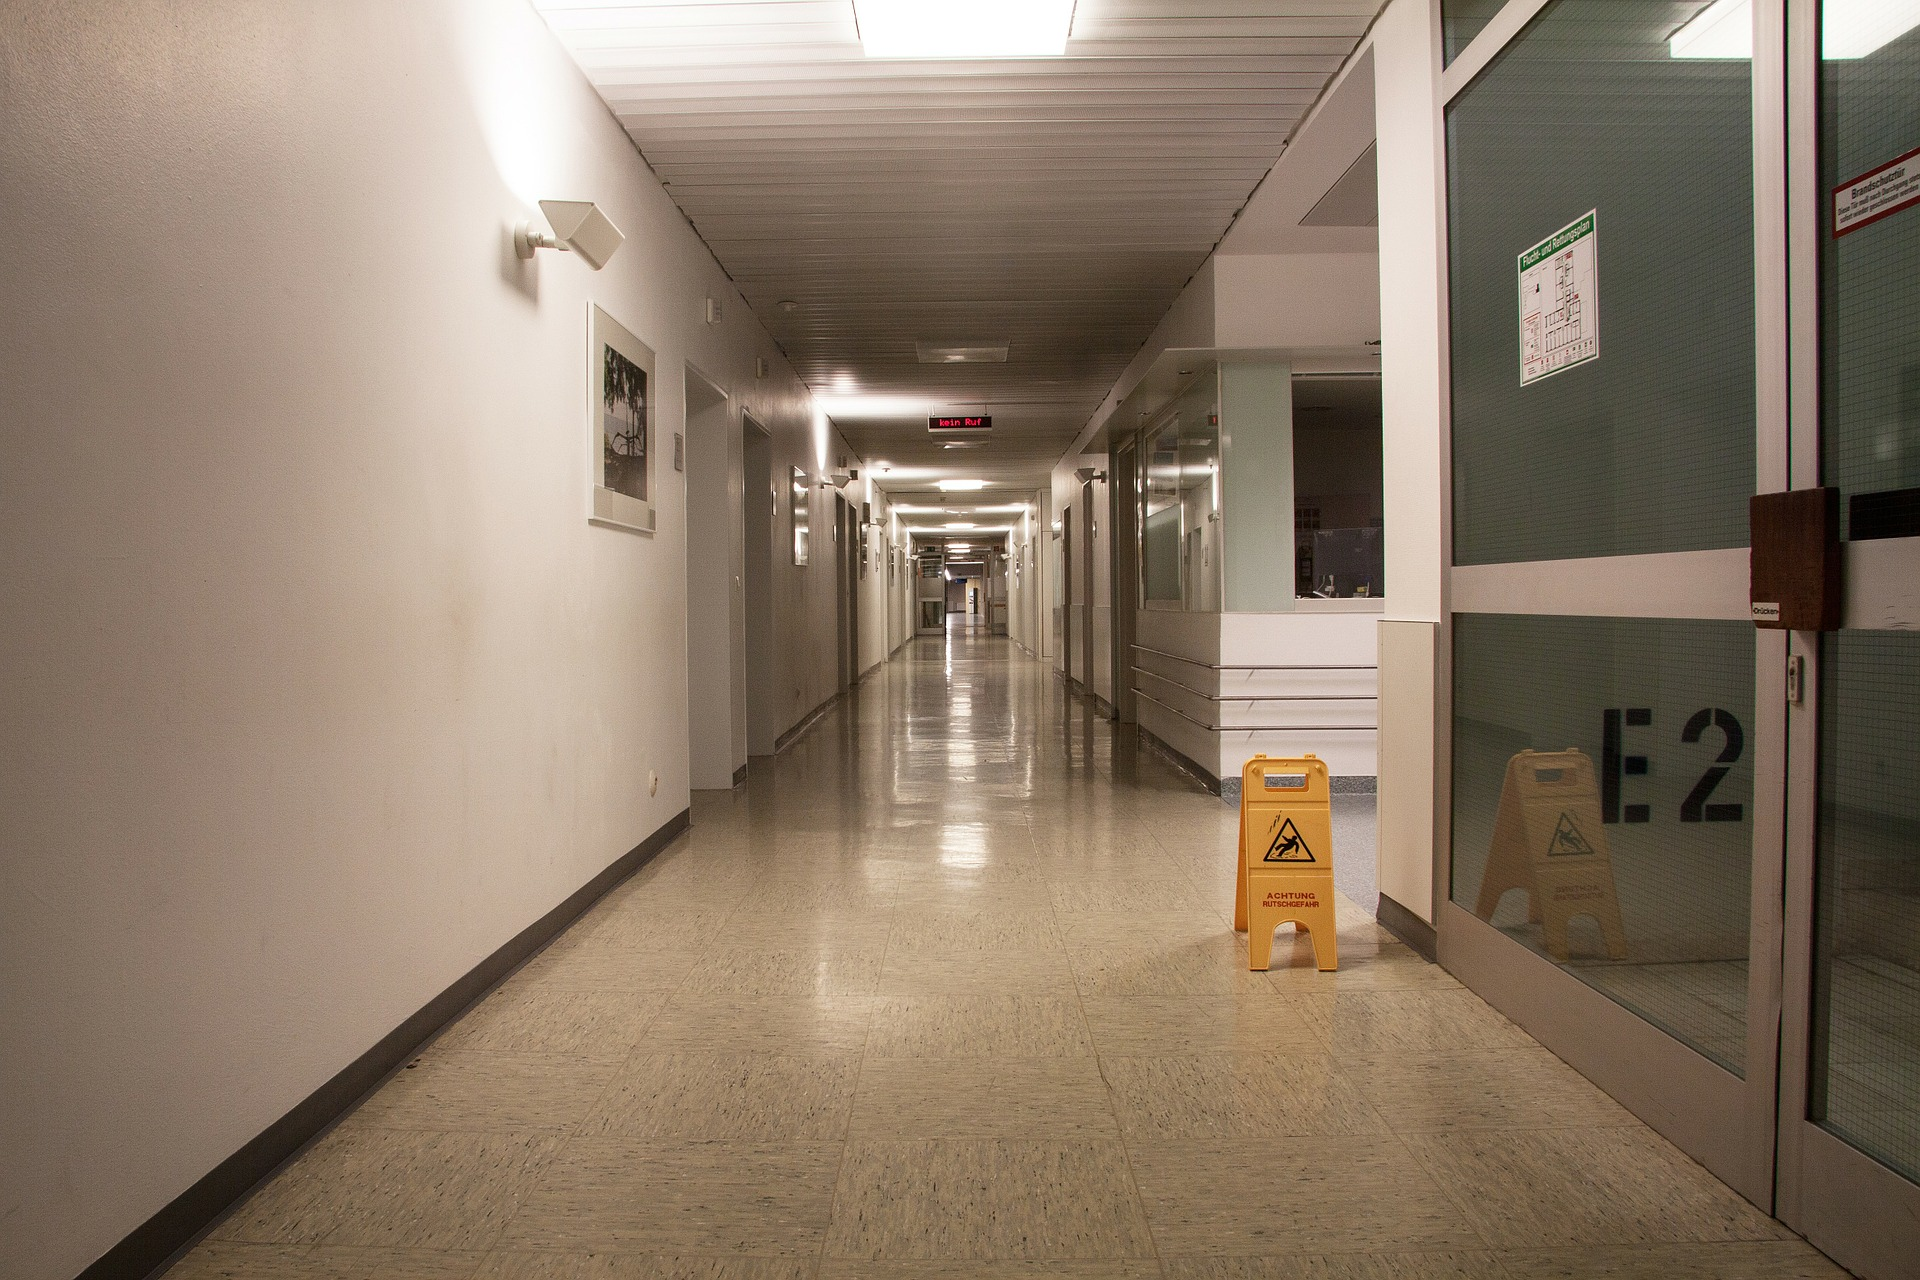 automatic doors in a medical center